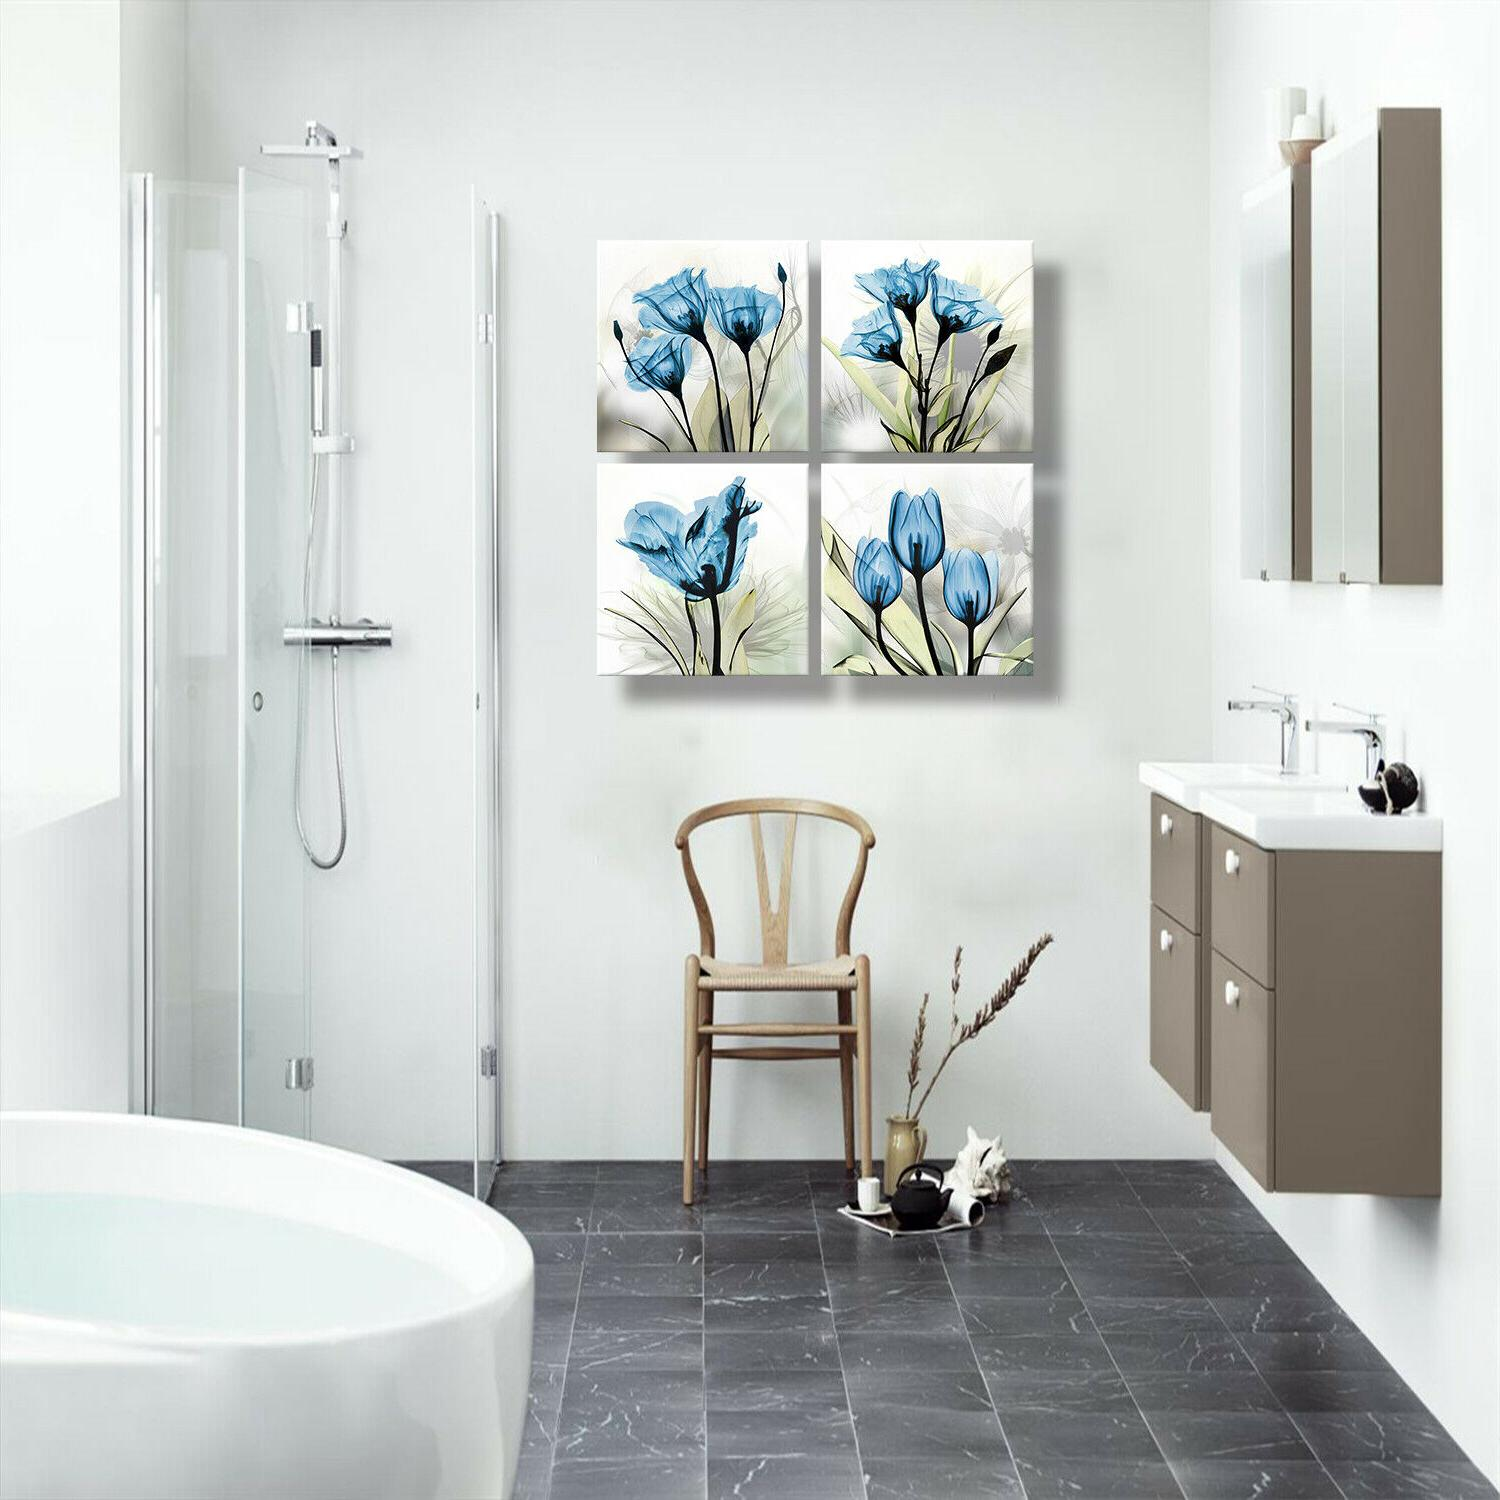 Flower Canvas Decor for Bathroom Office